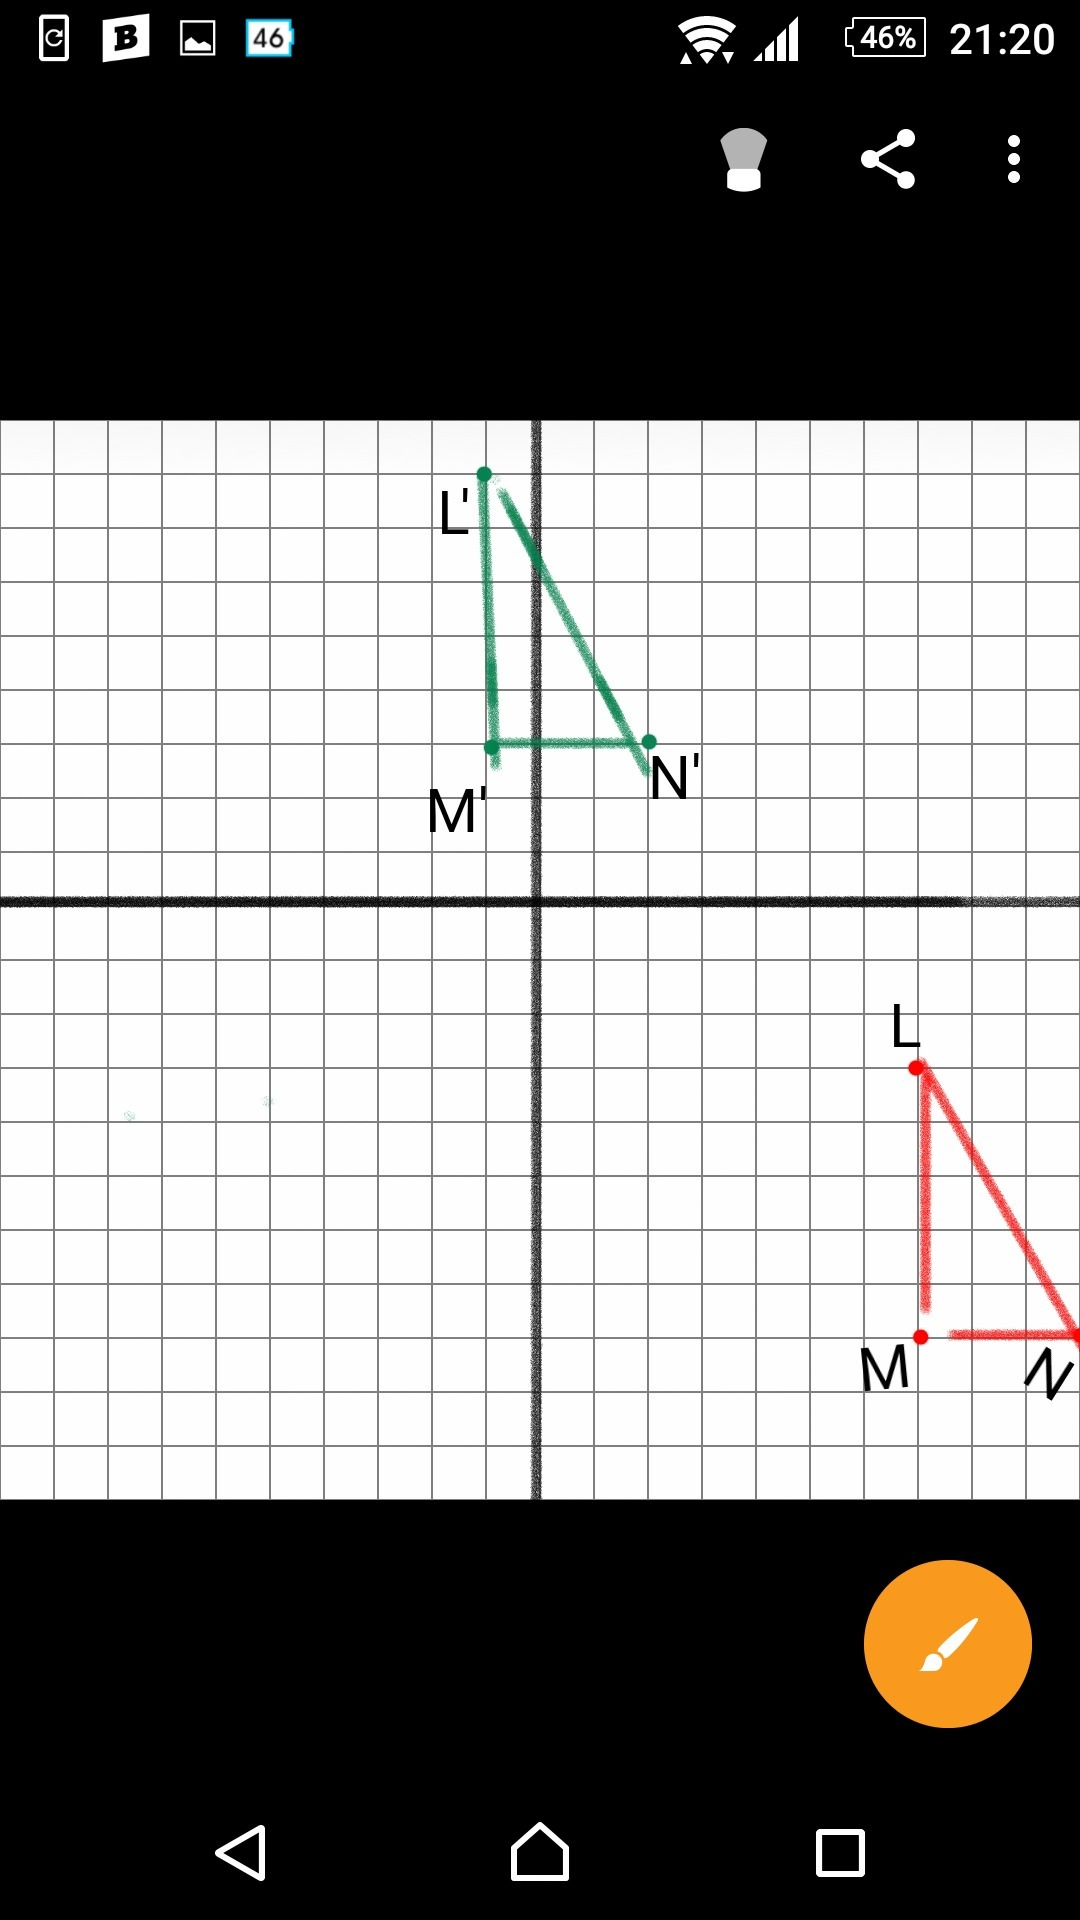 Right triangle LMN has vertices L(7, -3), M(7, -8), and N ...